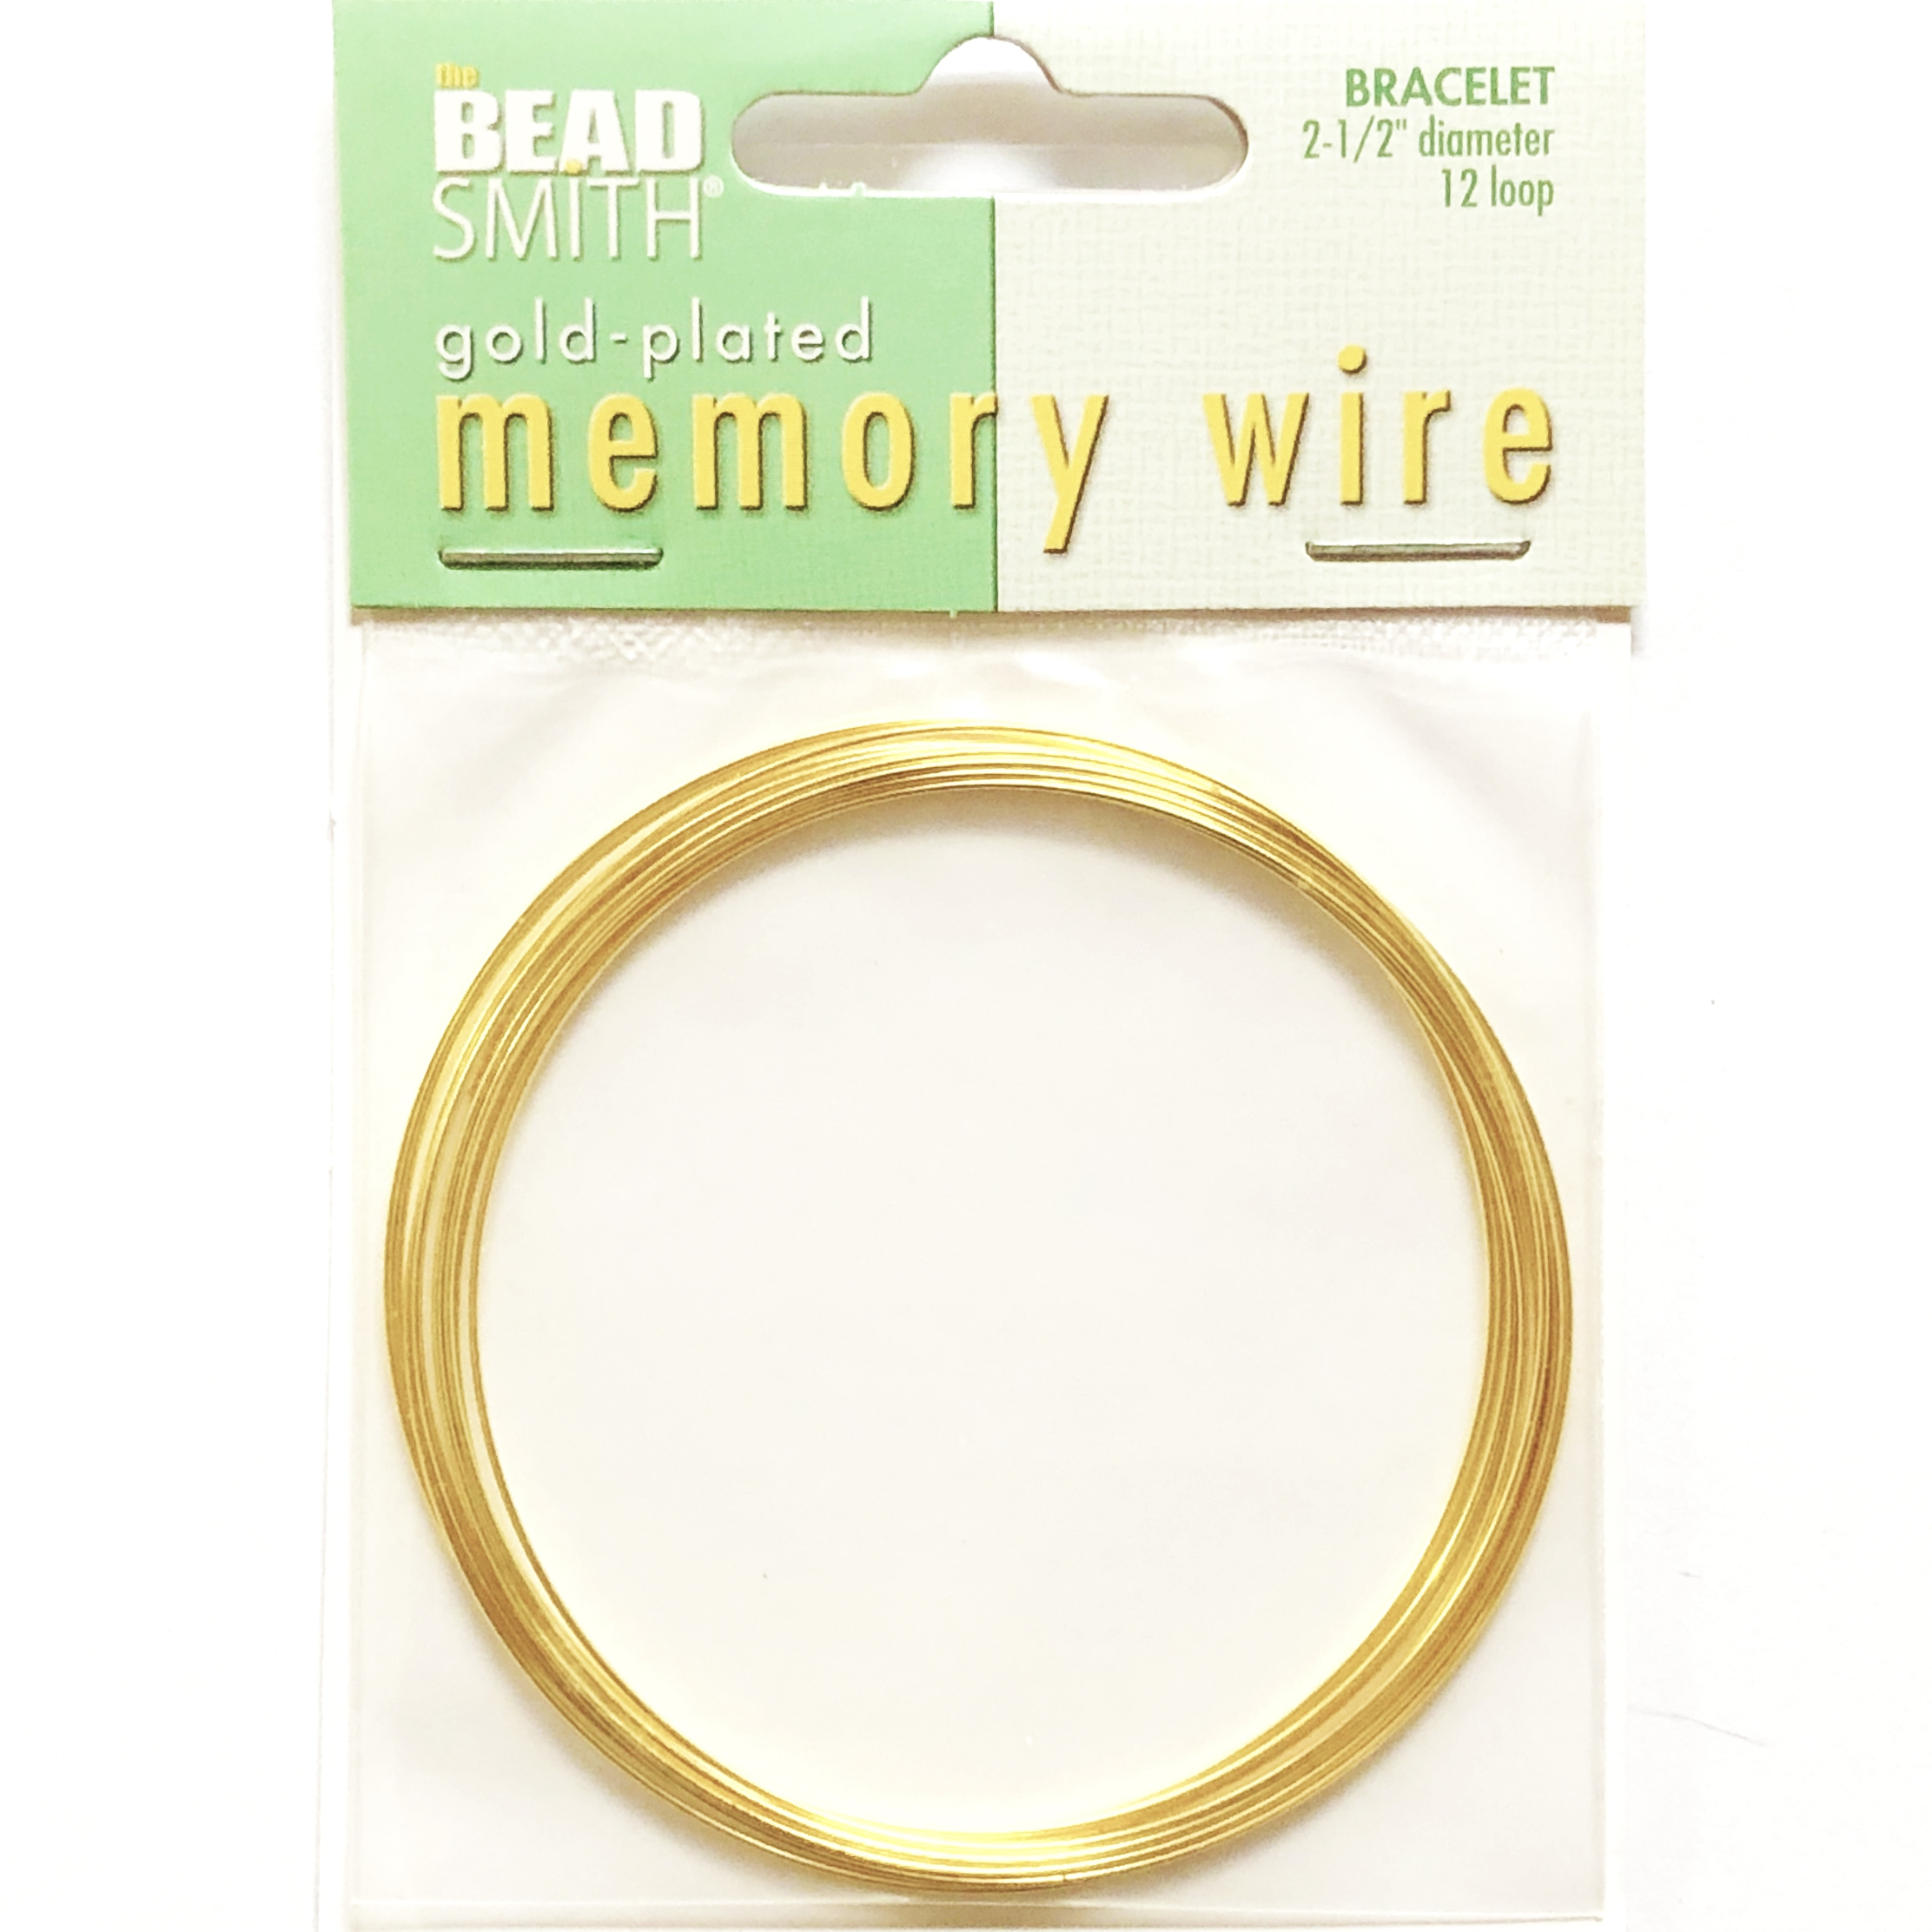 Round Memory Wire, Gold Plate, 09801, 2.5 inch, bracelet wire, jewelry wire, craft wire, jewelry making supplies, stainless steel memory wire, 12 loop wire, round wire